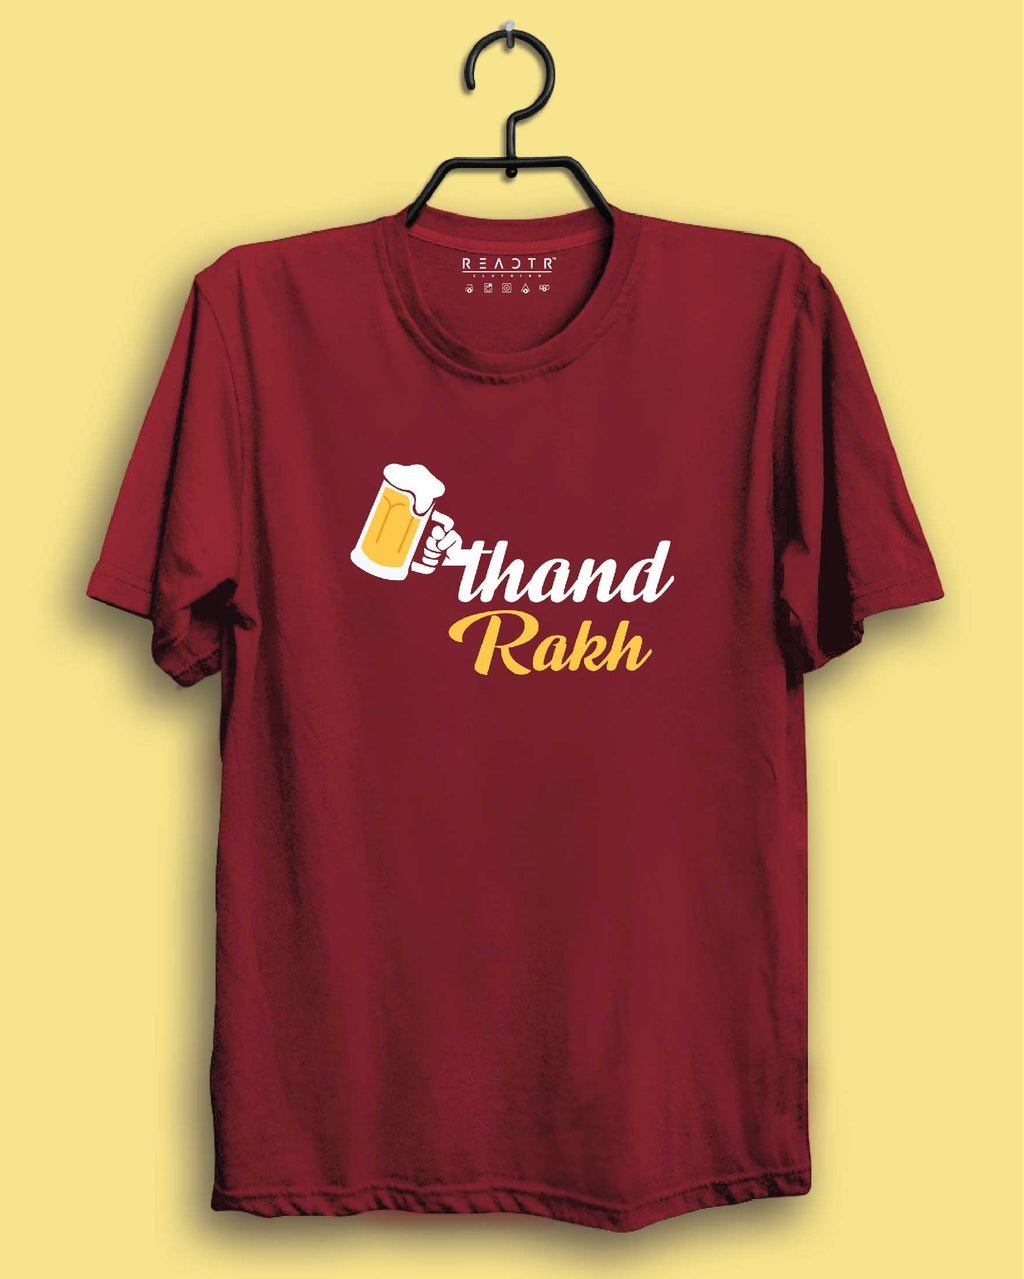 Thand Rakh  Reactr Tshirts For Men - Eyewearlabs